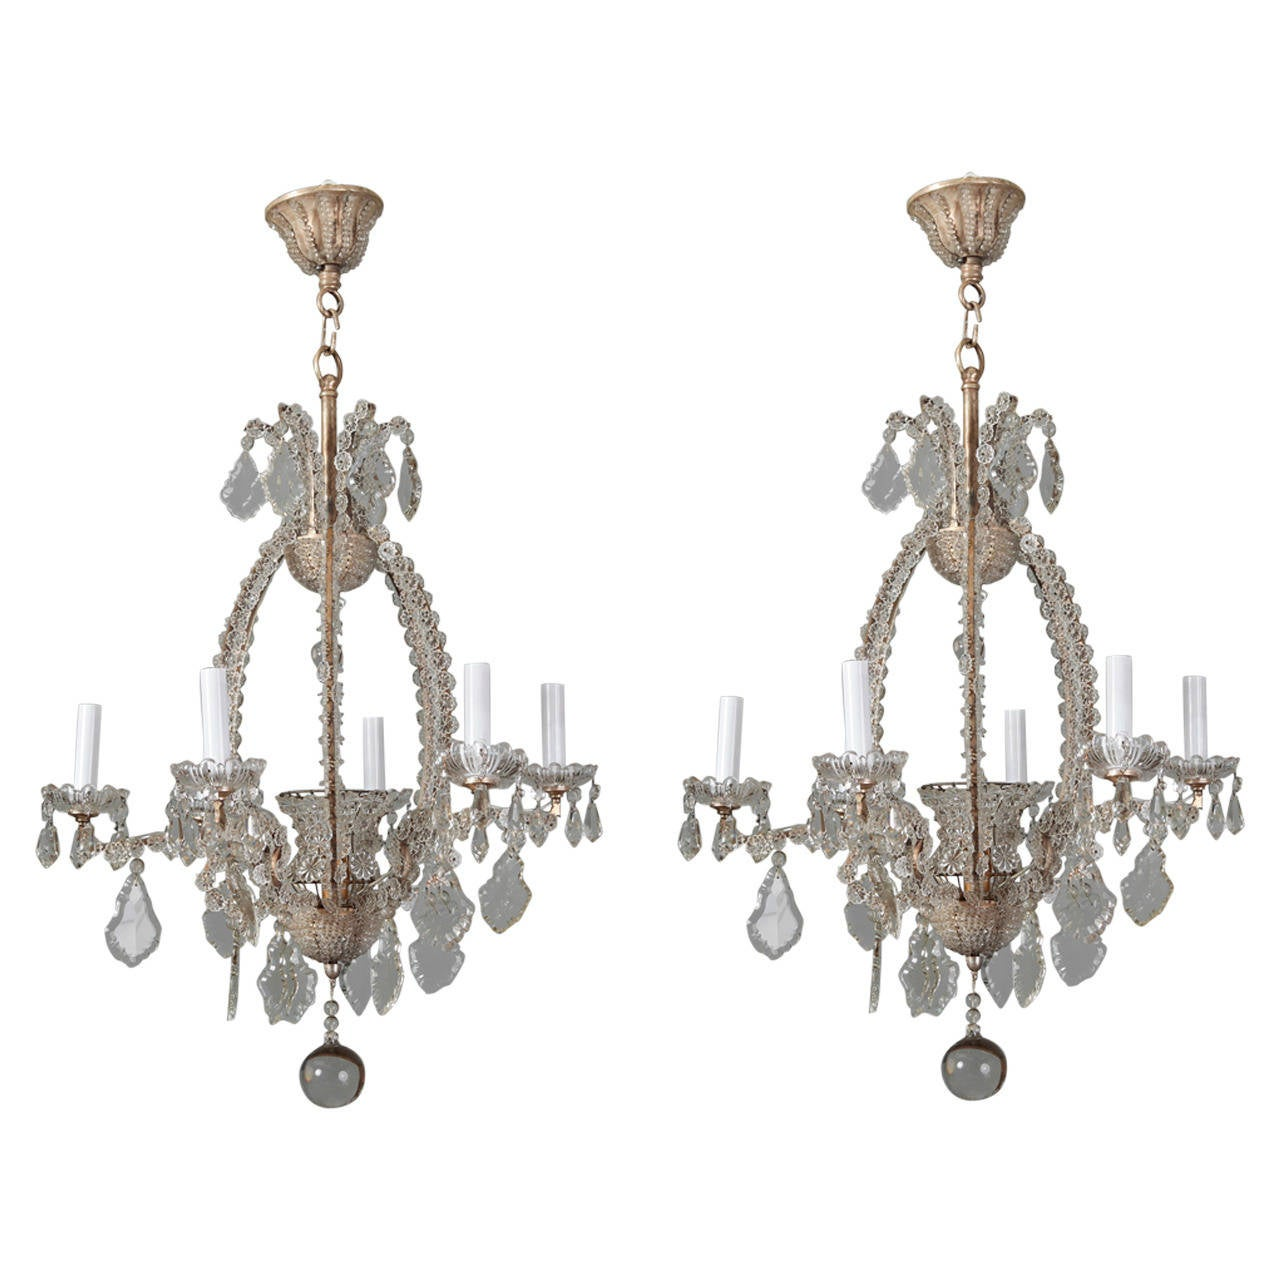 Pair Of Italian Chandeliers With Round Beads And Original